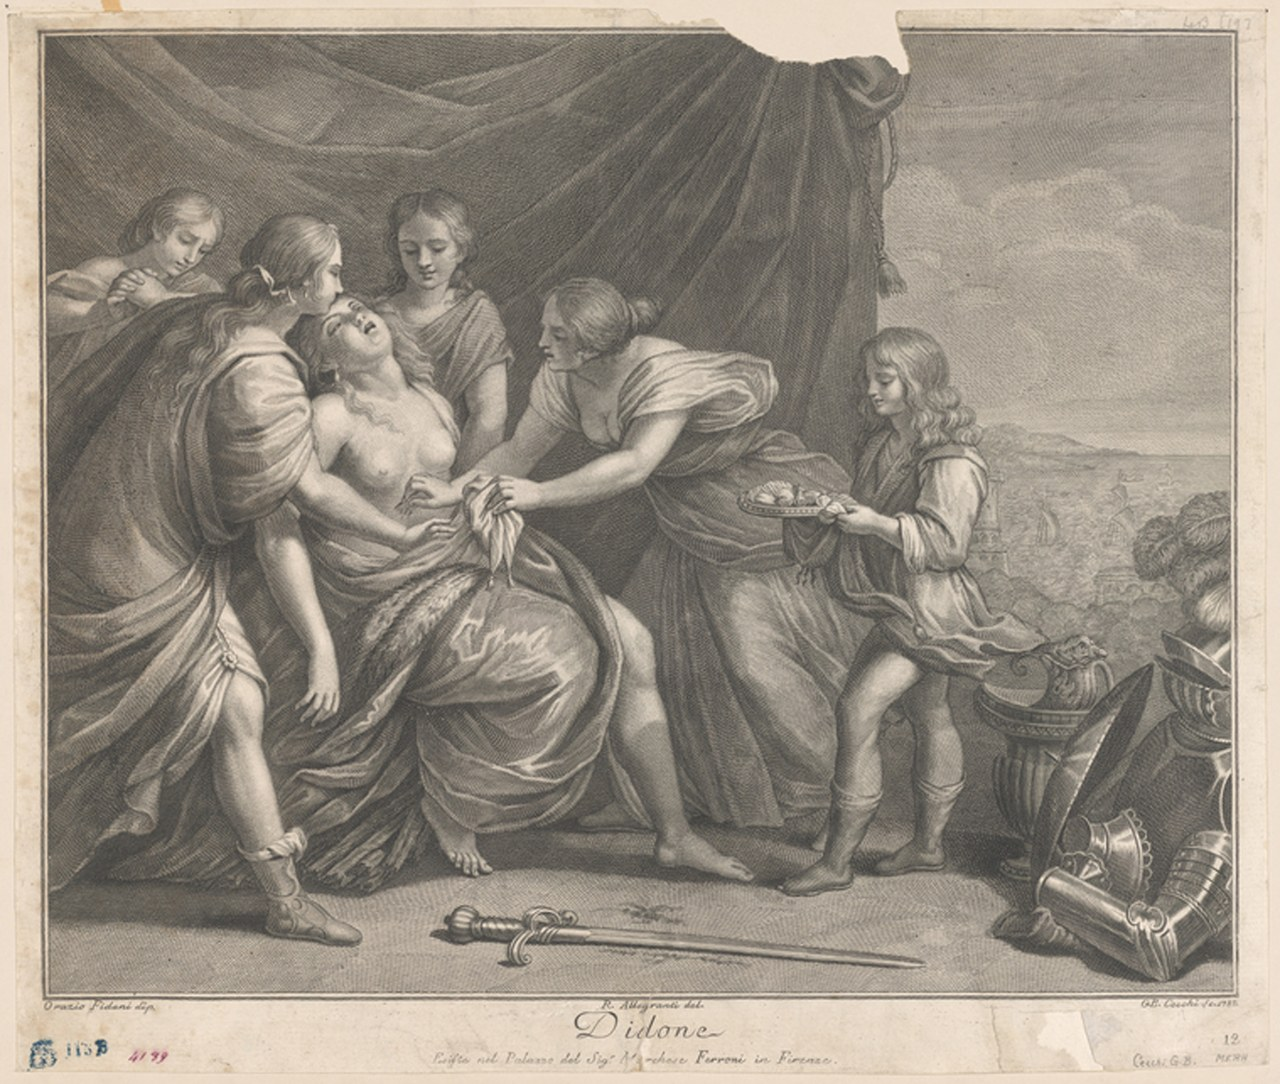 Fig. 3 Cecchi, Giambattista, La morte di Didone, XVII sec. (The New York Public Library, Digital Connections).